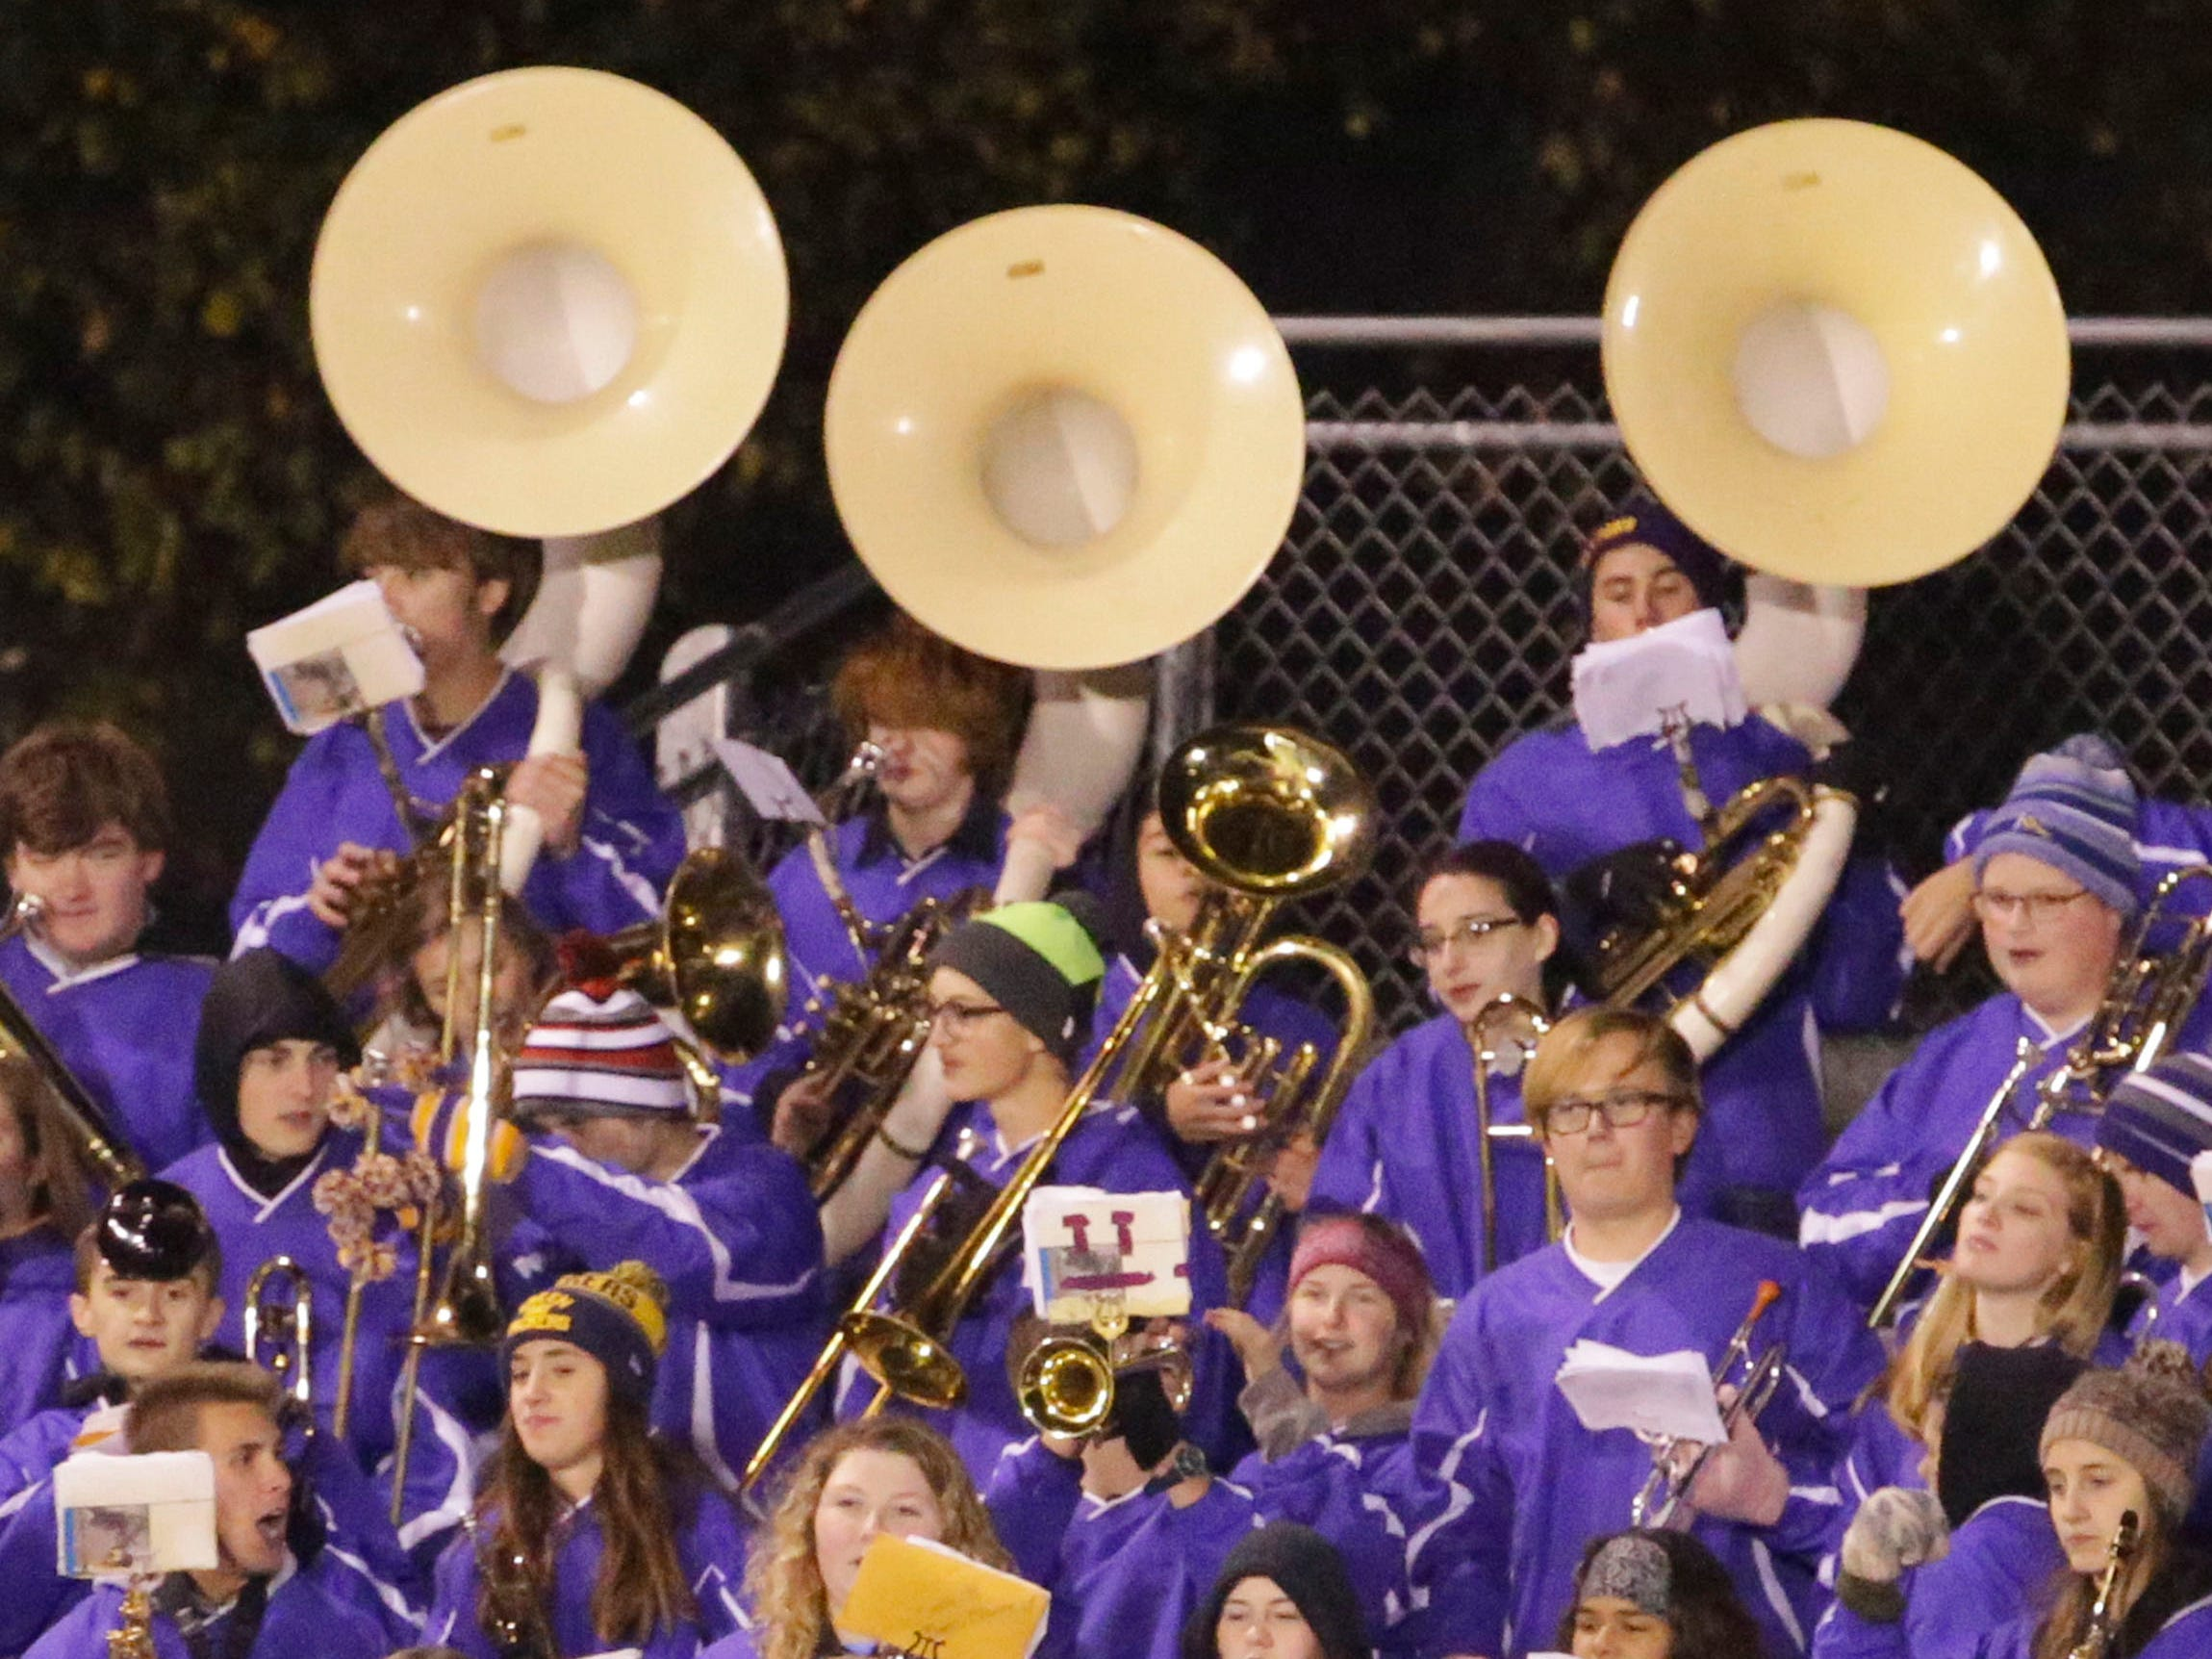 The Sheboygan Falls band performs before the game with Two Rivers, Friday, October 12, 2018, in Sheboygan Falls, Wis.